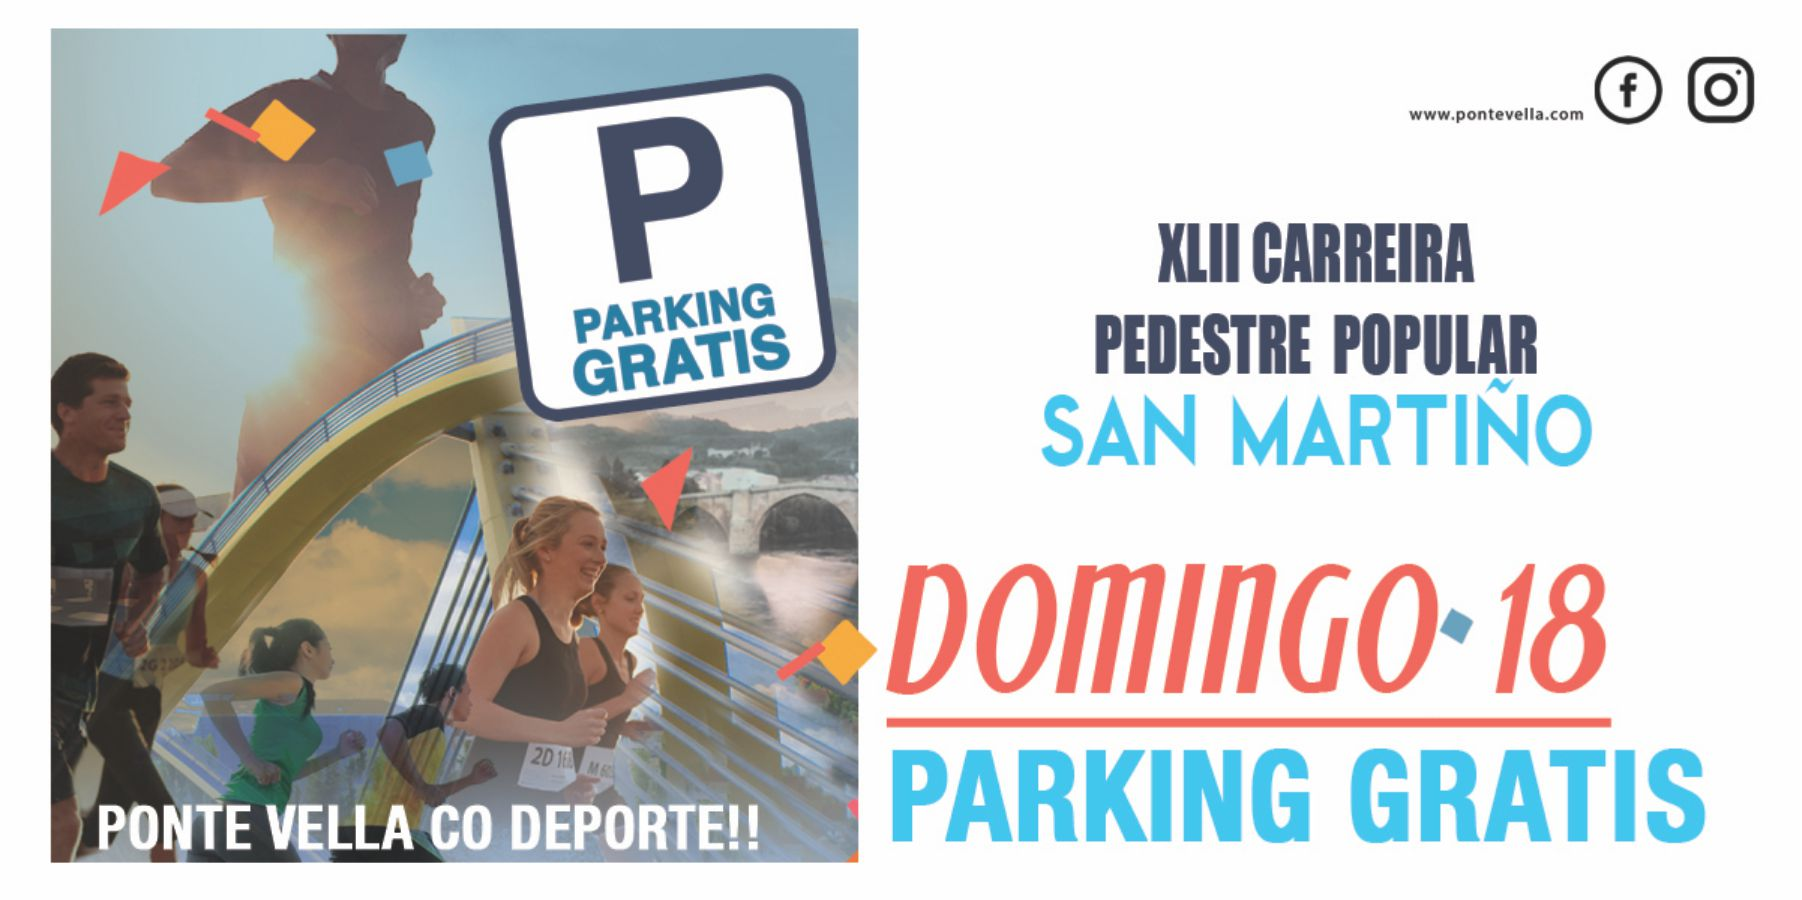 Domingo 18 Parking Gratis